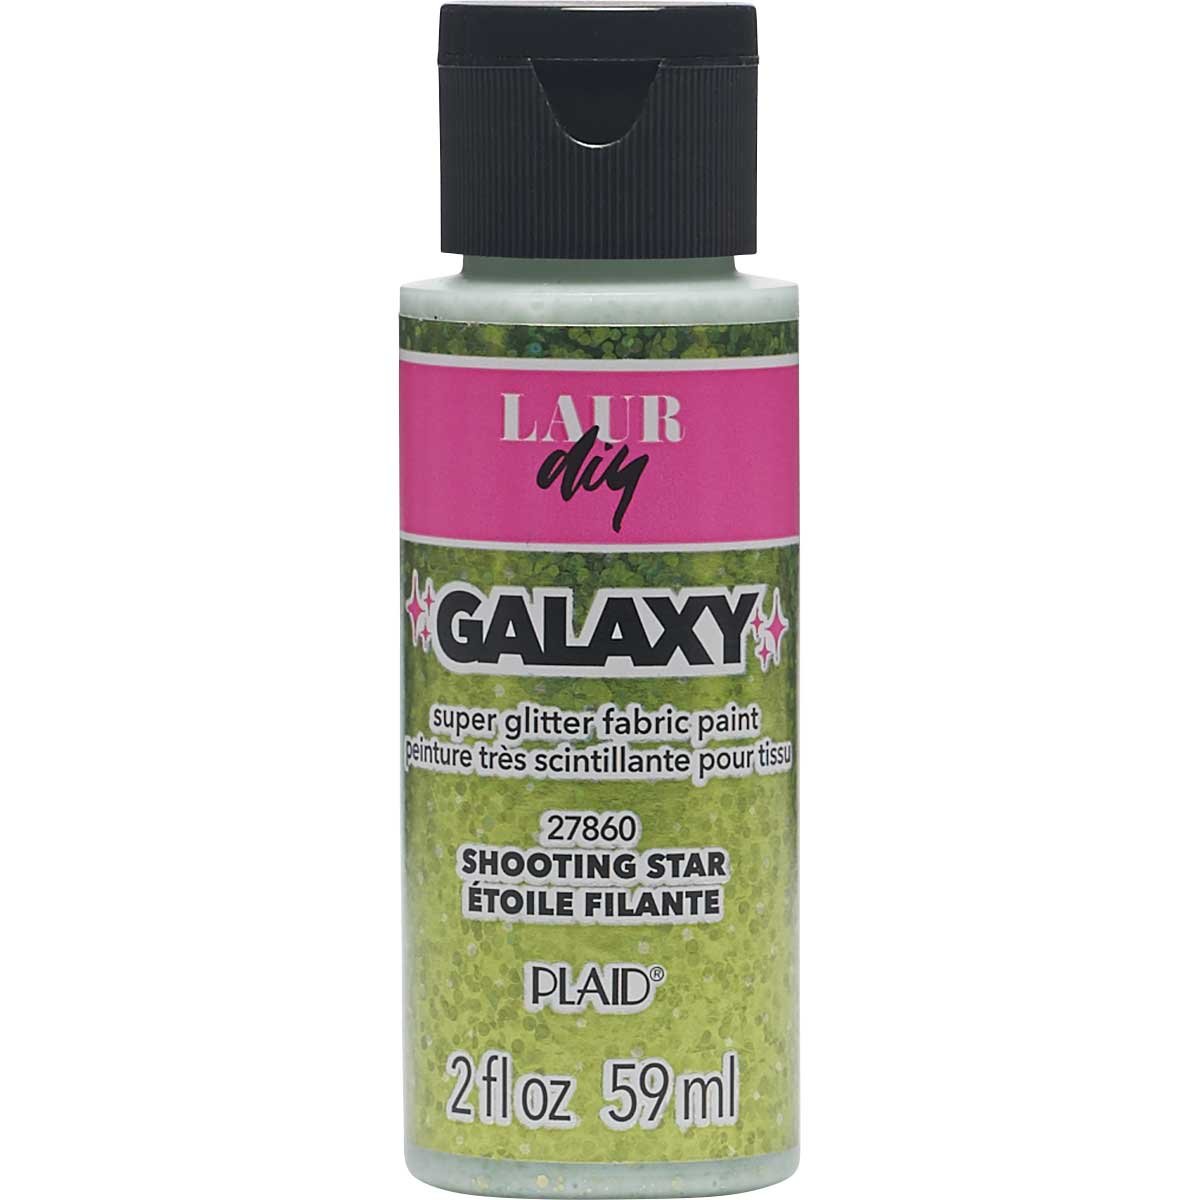 LaurDIY ® Galaxy Glitter Fabric Paint - Shooting Star, 2 oz.